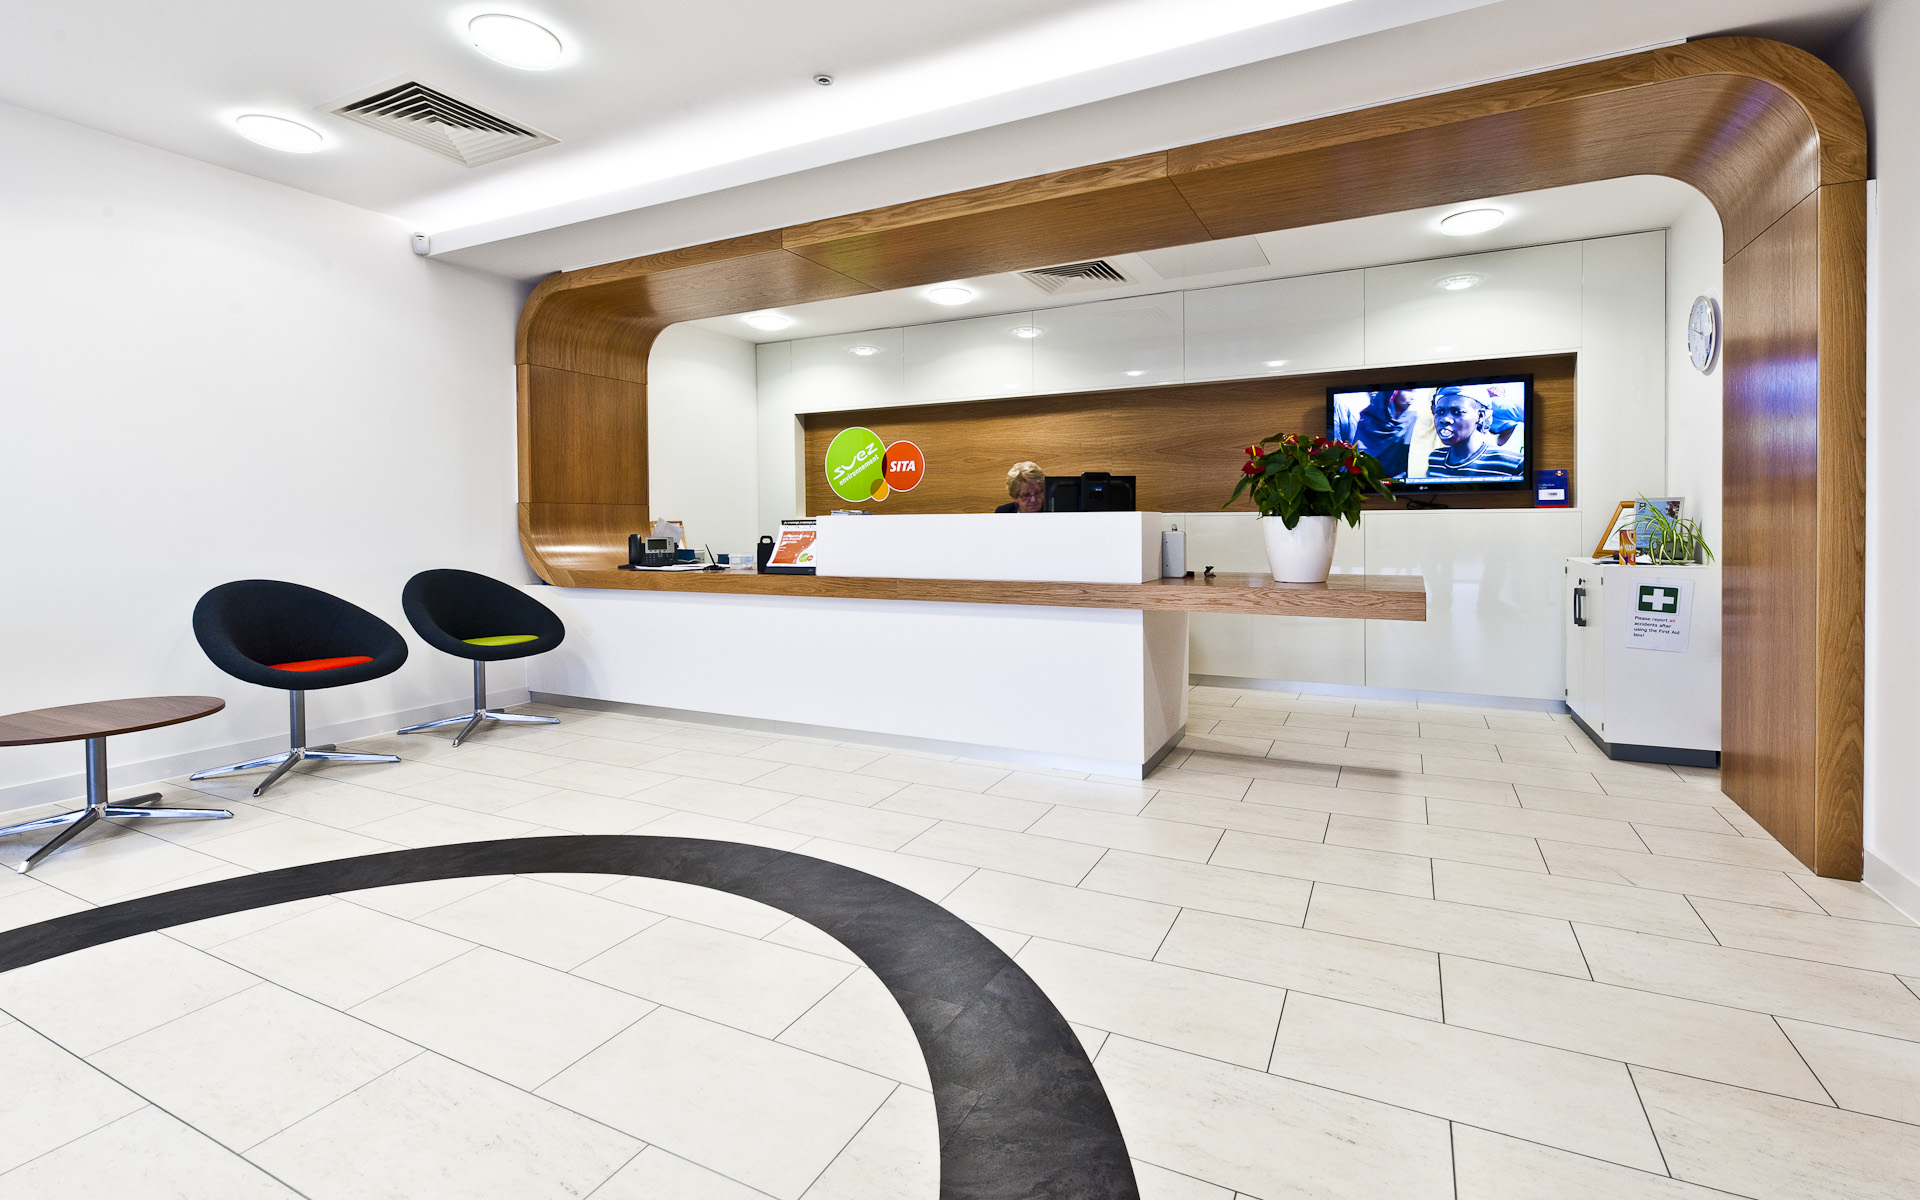 Internal corporate photography shoot for SITA SUEZ